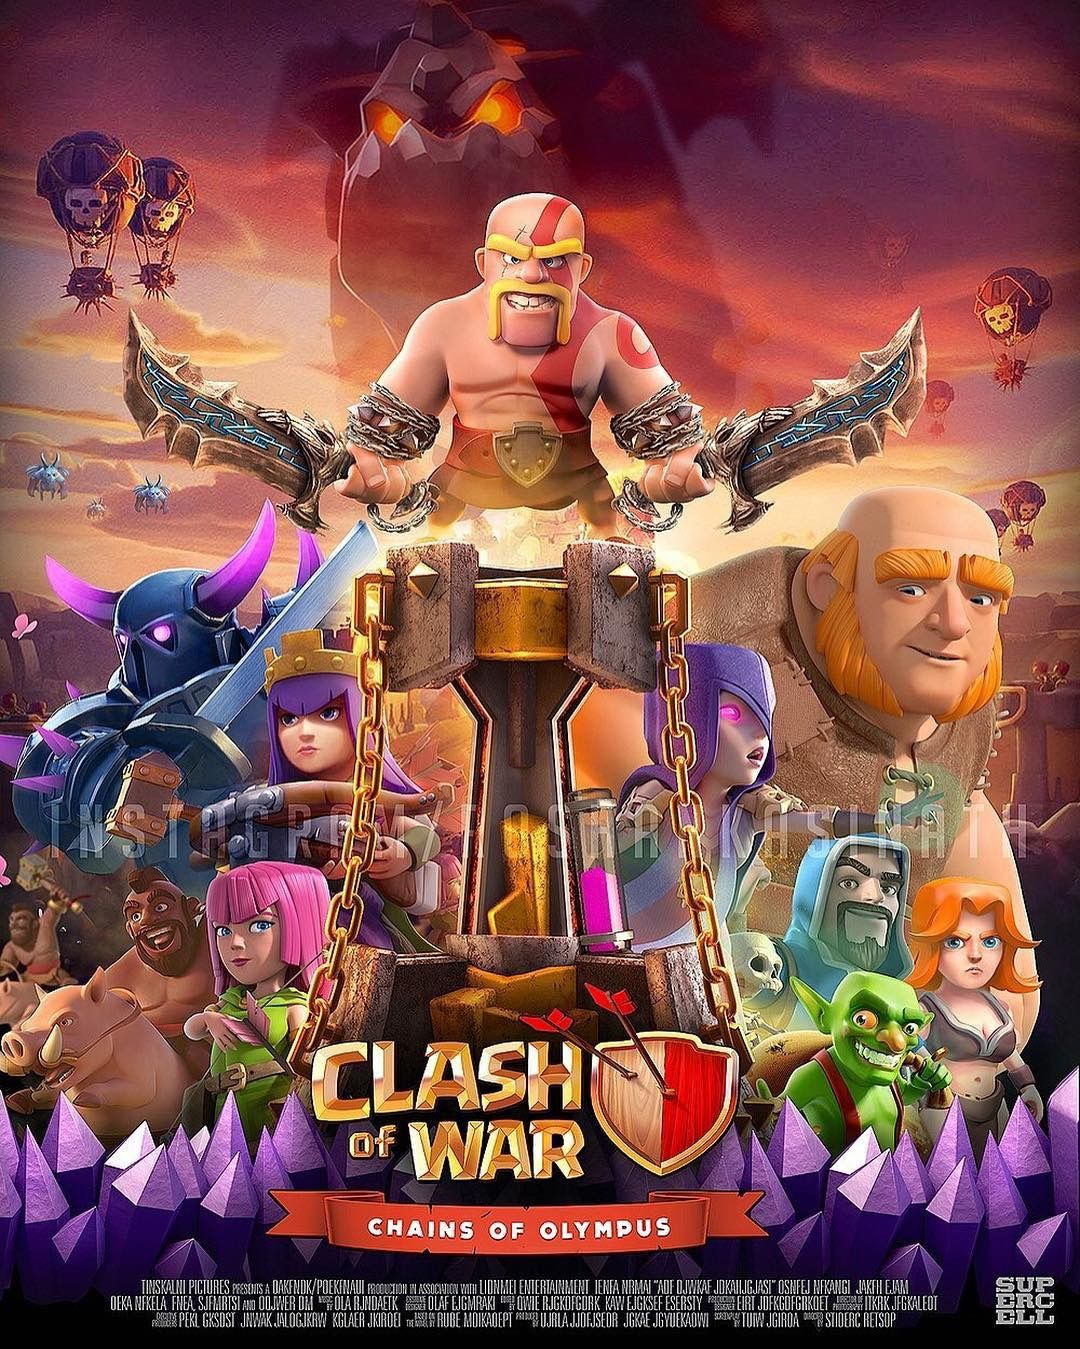 Clash of clans | Clash of Clans | Pinterest | Clash royale, Gaming ...